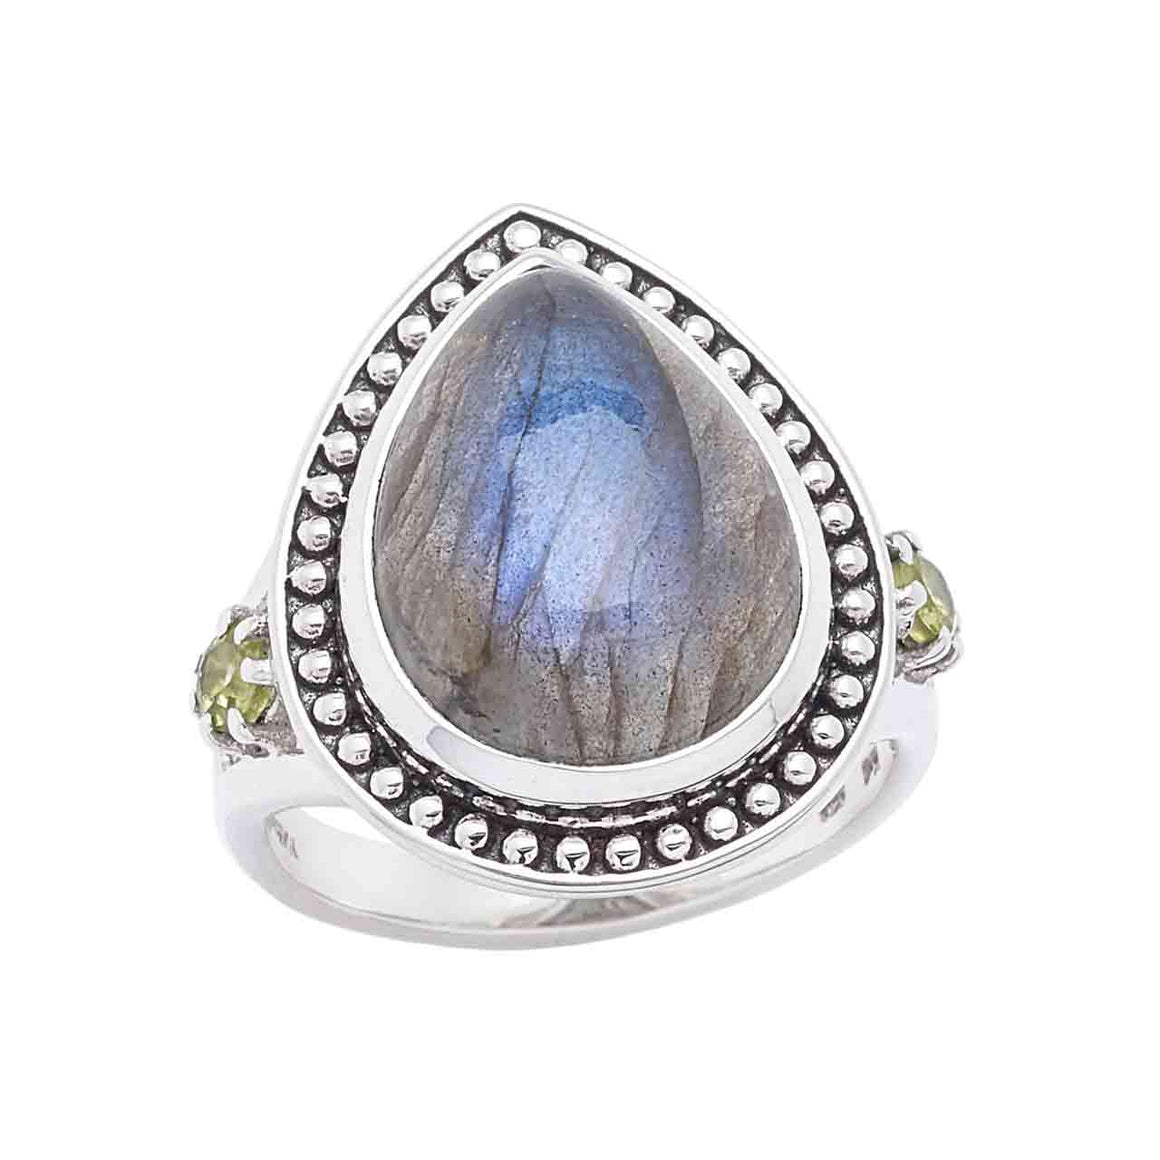 Labradorite and Peridot Gemstone Ring